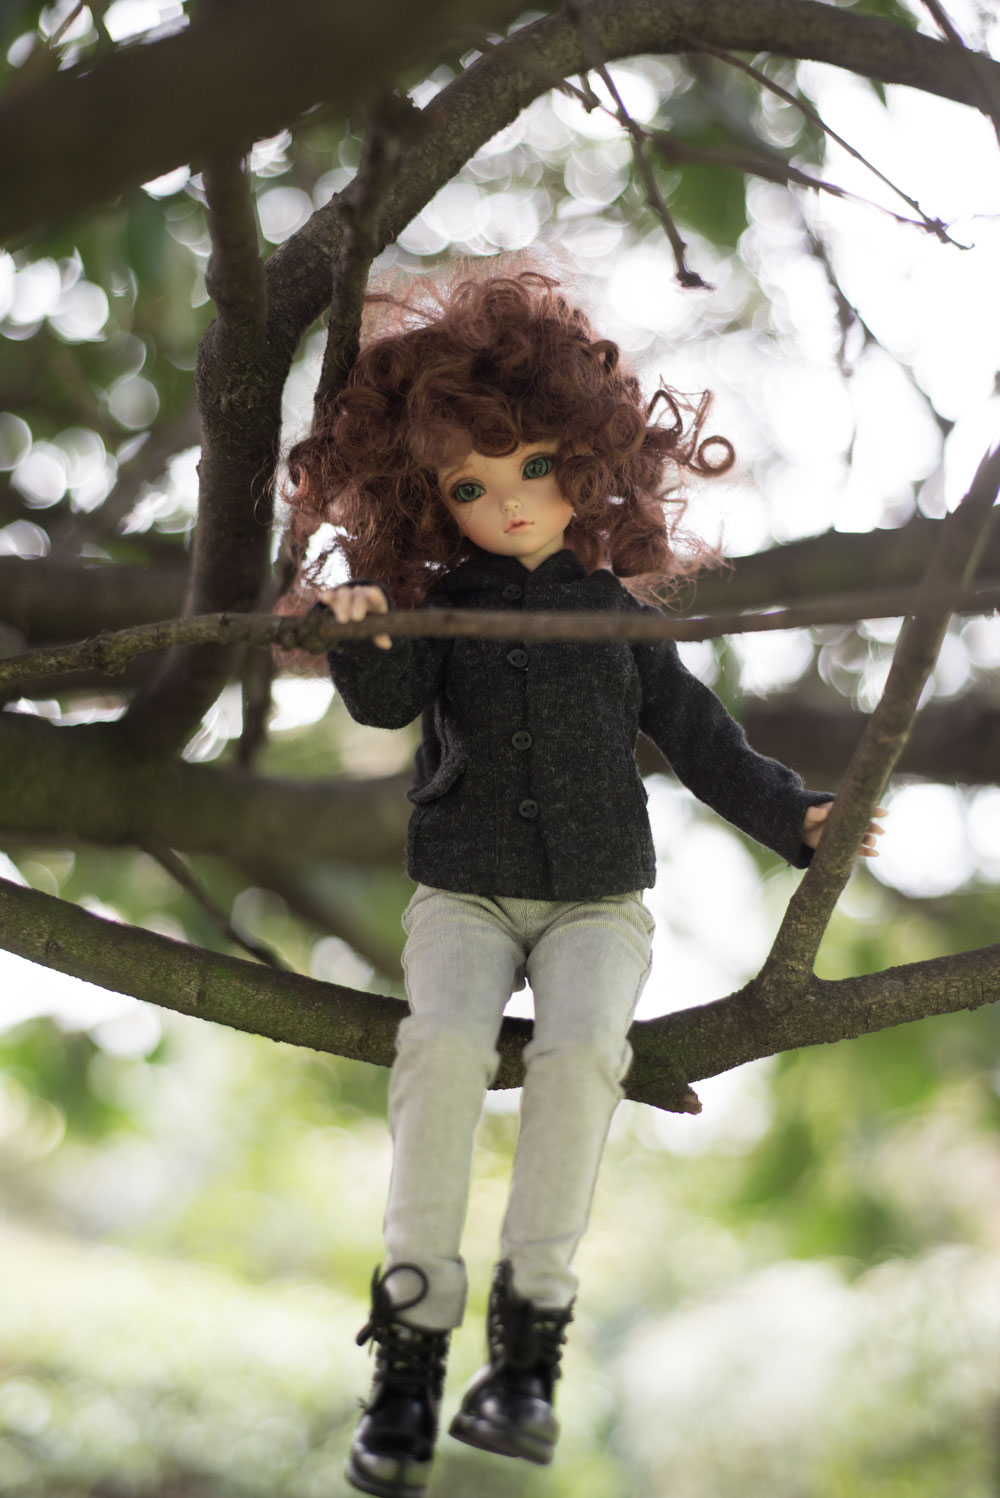 KID-Irene-tree-branch3